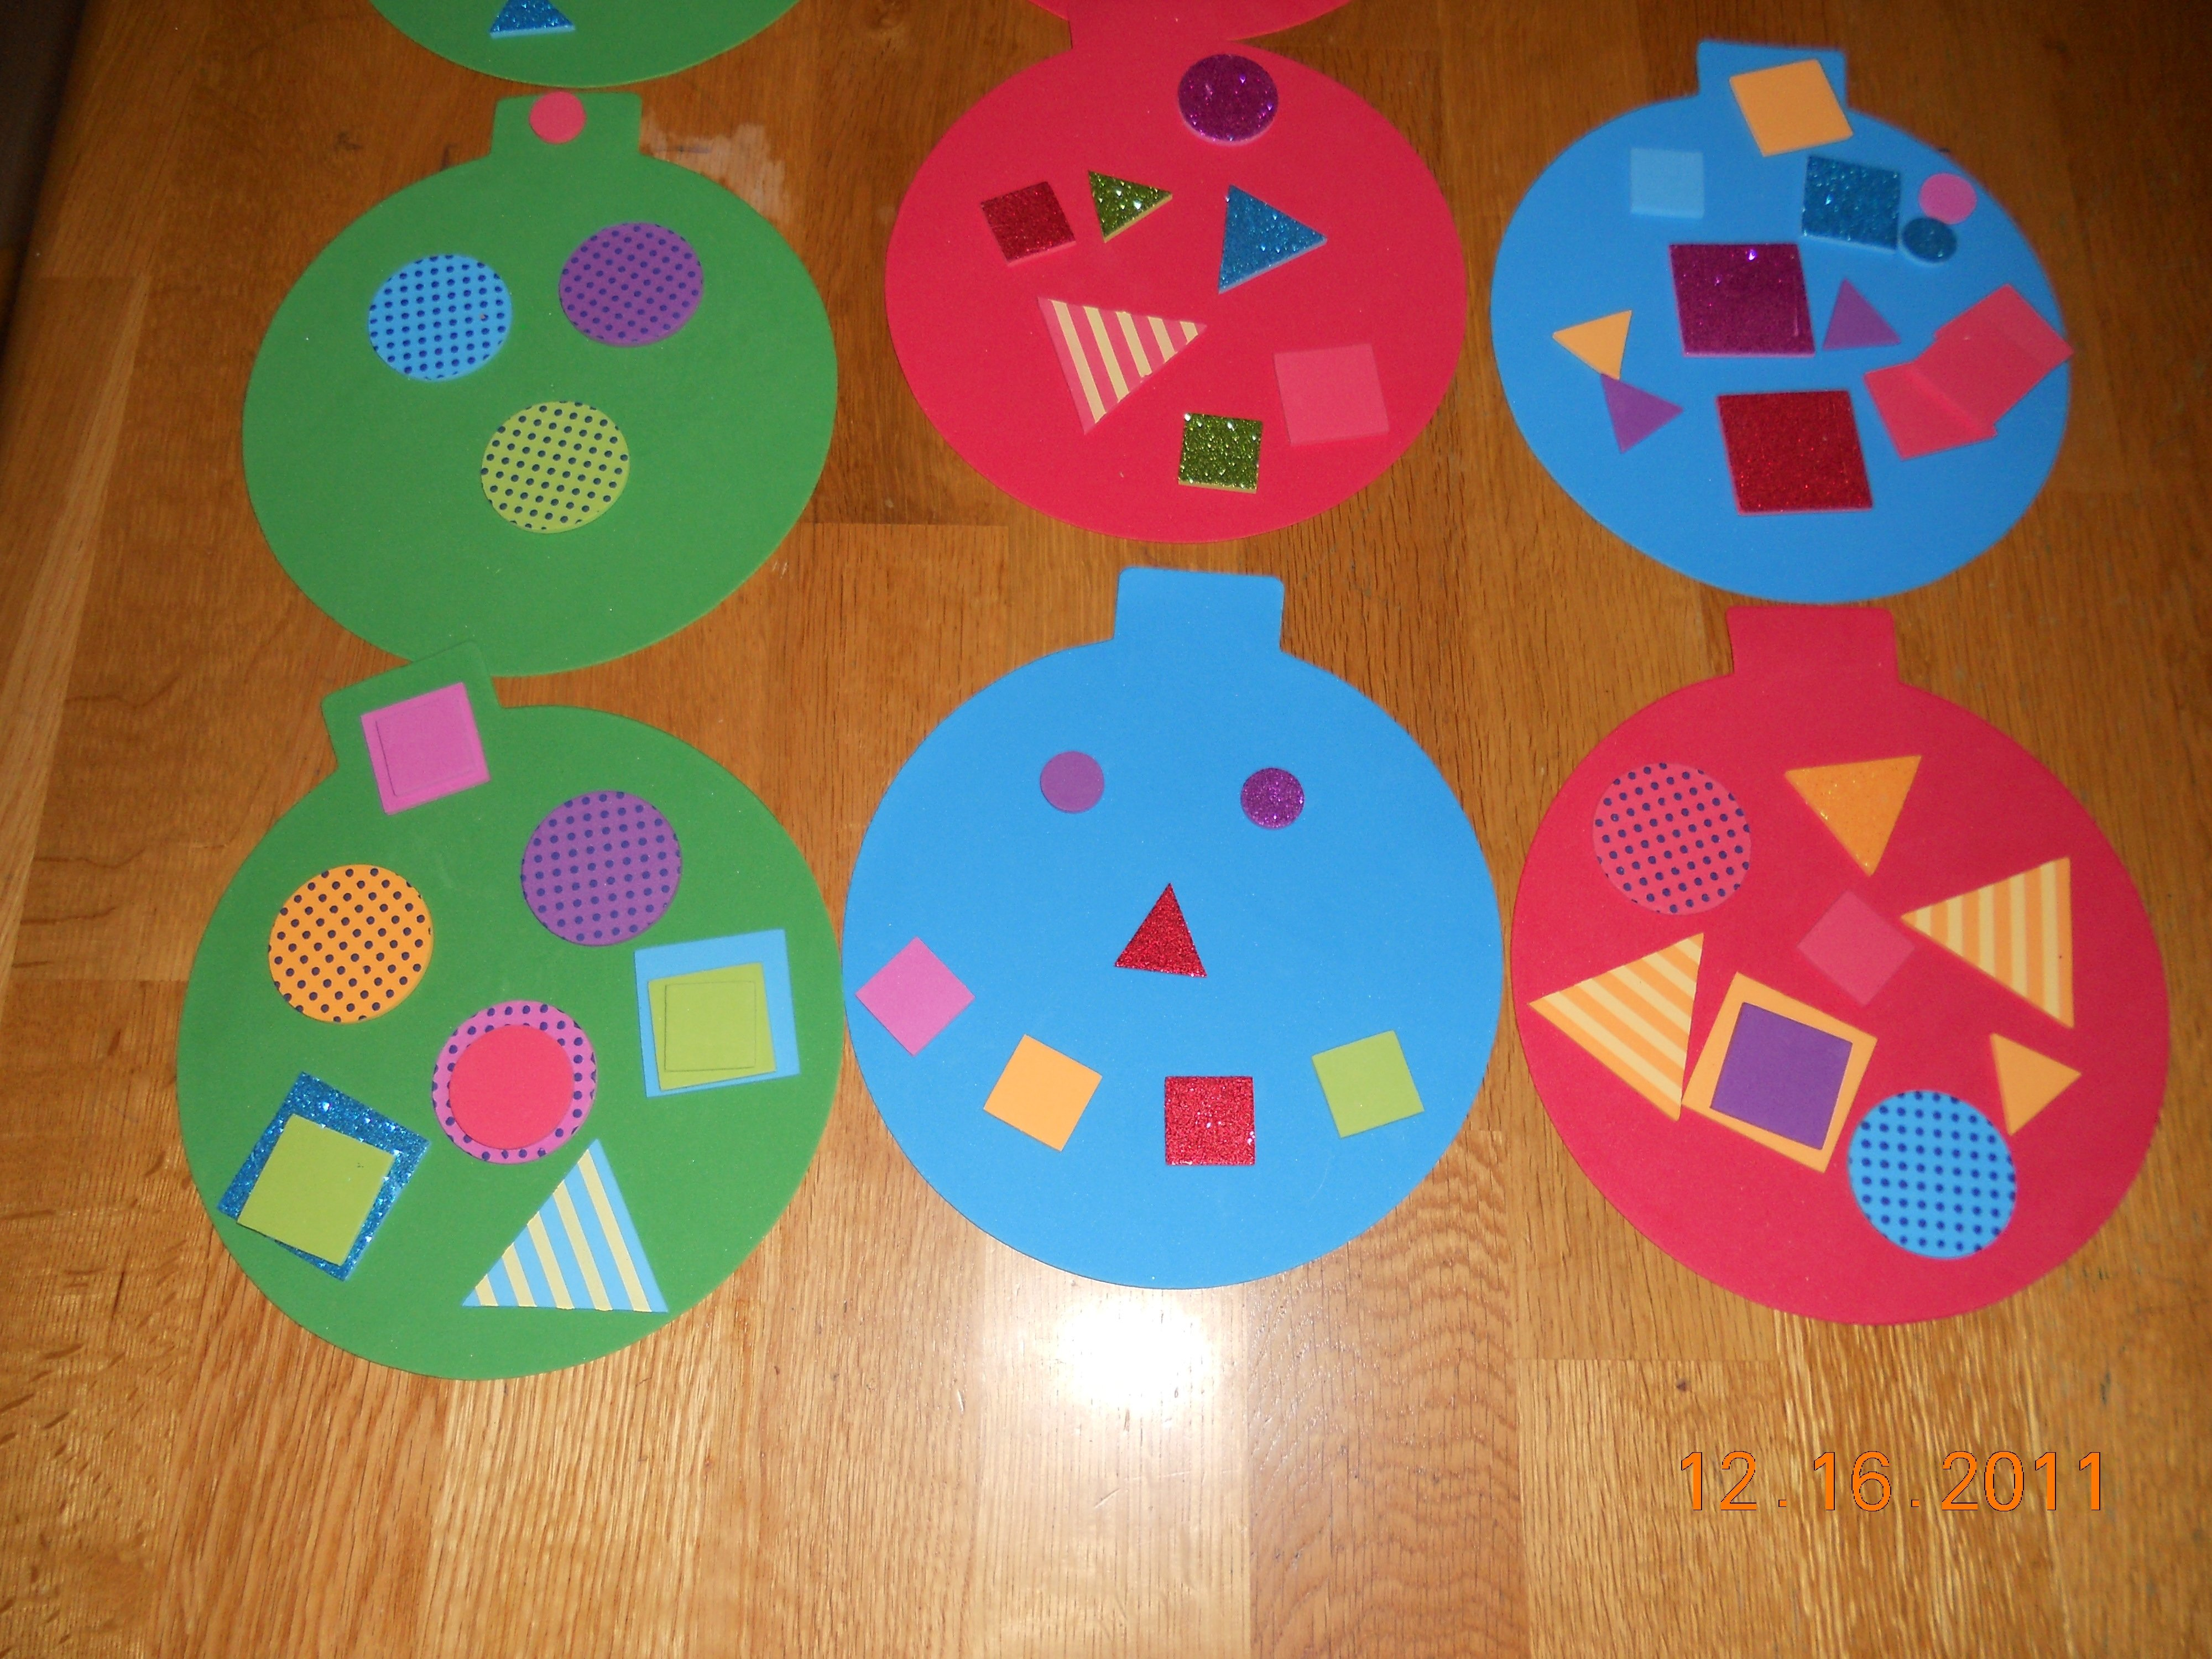 10 Amazing Holiday Craft Ideas For Kids 15 fun and easy christmas craft ideas for kids miss lassy 3 2020